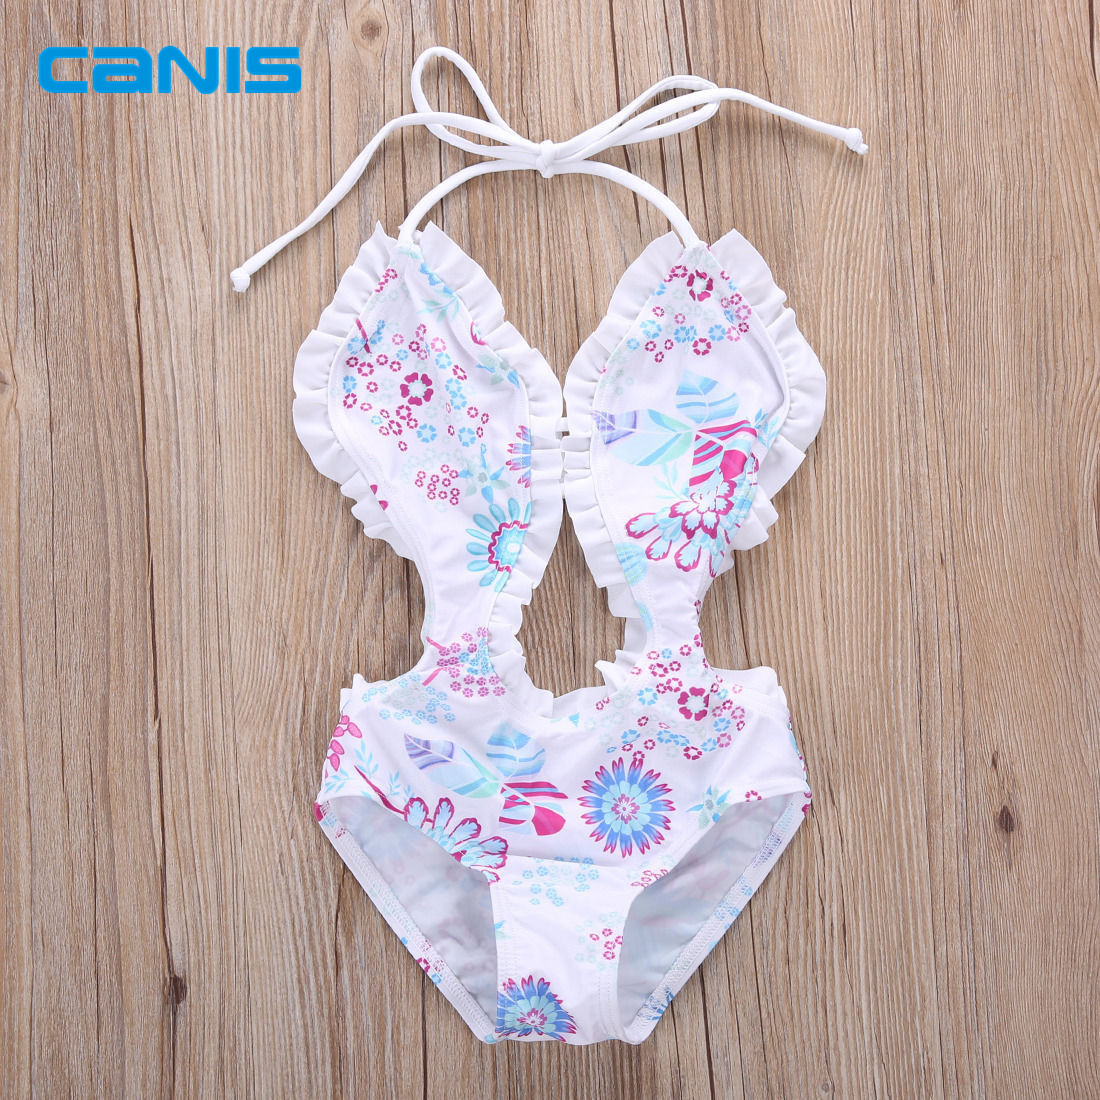 Mar 24,  · We are showing the latest style of our baby kids swimsuit / bikini of this summer.